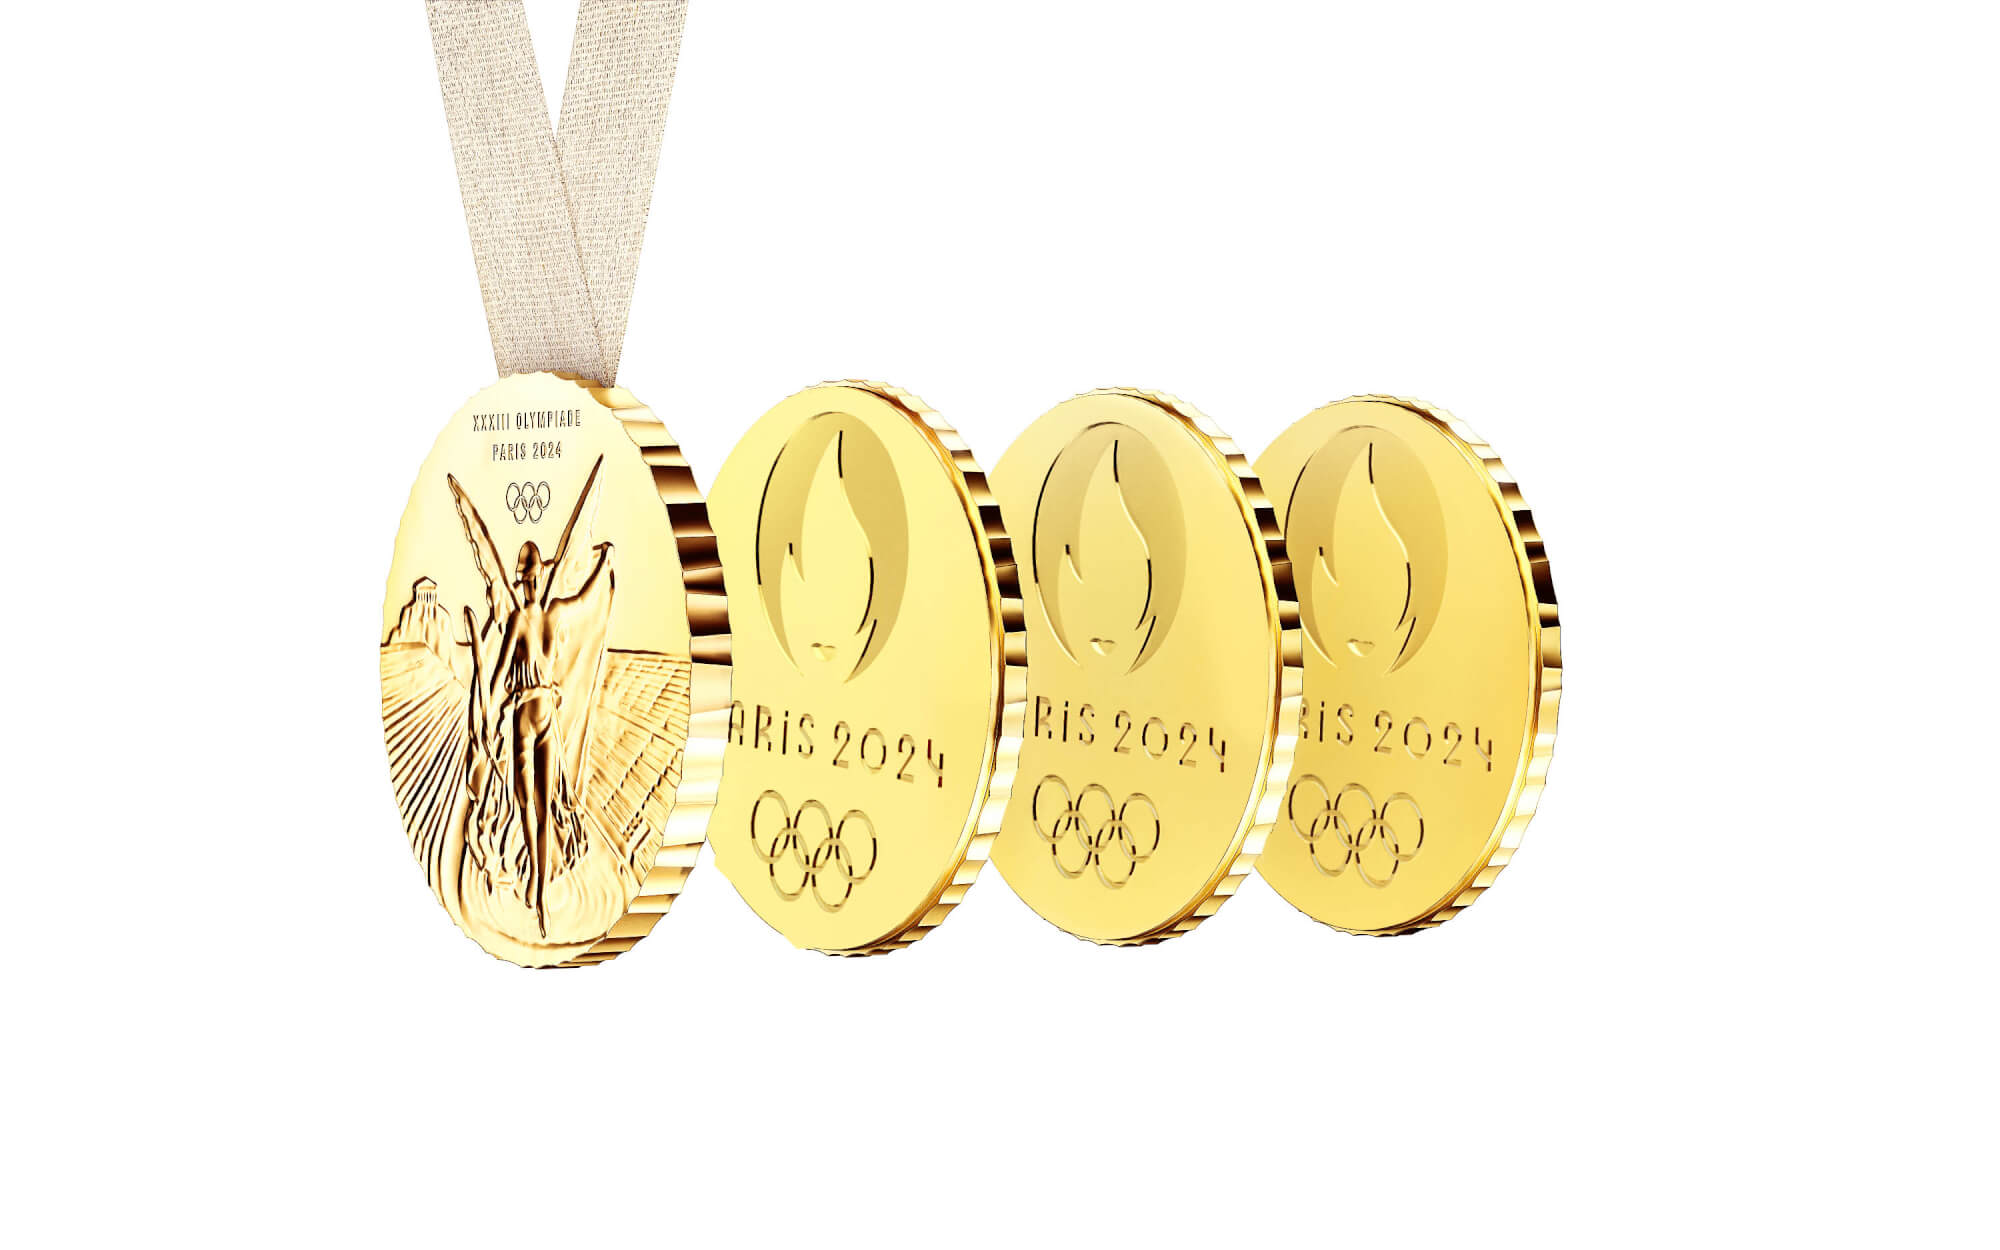 The medal of the Olympics Paris 2024: a medal to be shared, for real